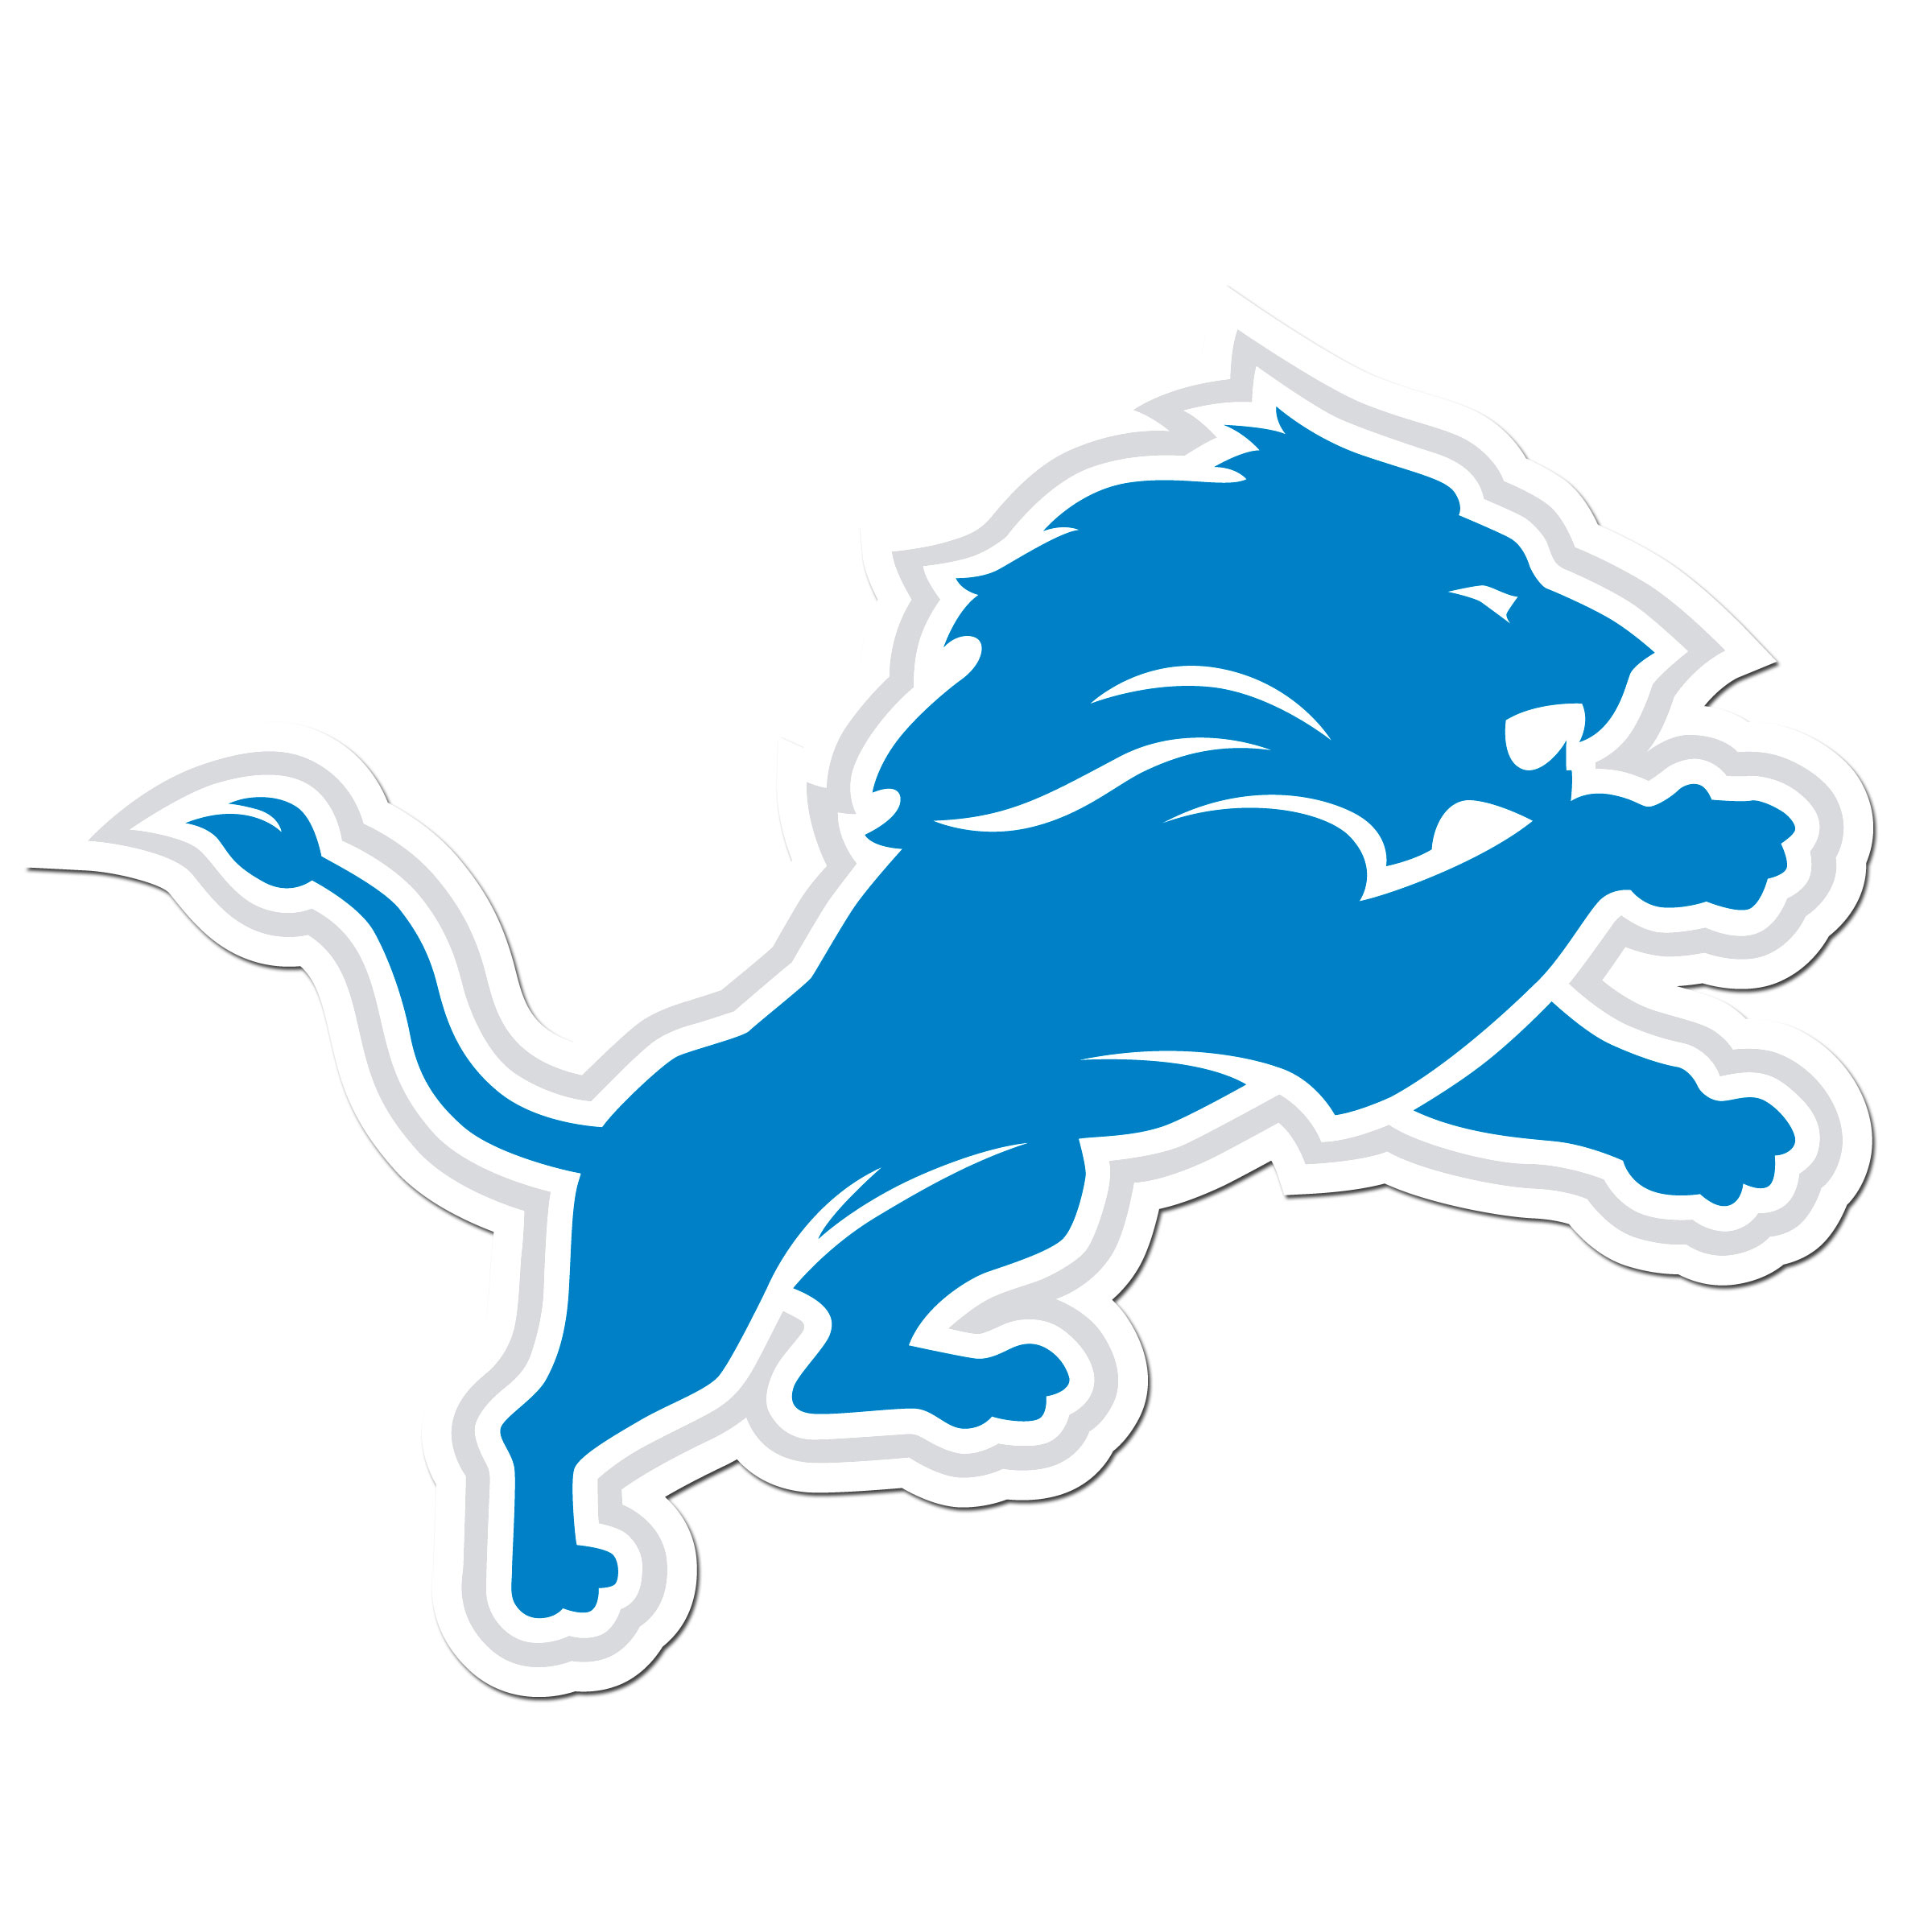 Detroit Lions 8 inch Auto Decal - This bold, 8 inch Detroit Lions is a great way to show off your team pride! The low tack vinyl decal is easily positioned and adjusted to make sure you get that logo in just the right spot on your vehicle. Designed to be used on the outside of the window.